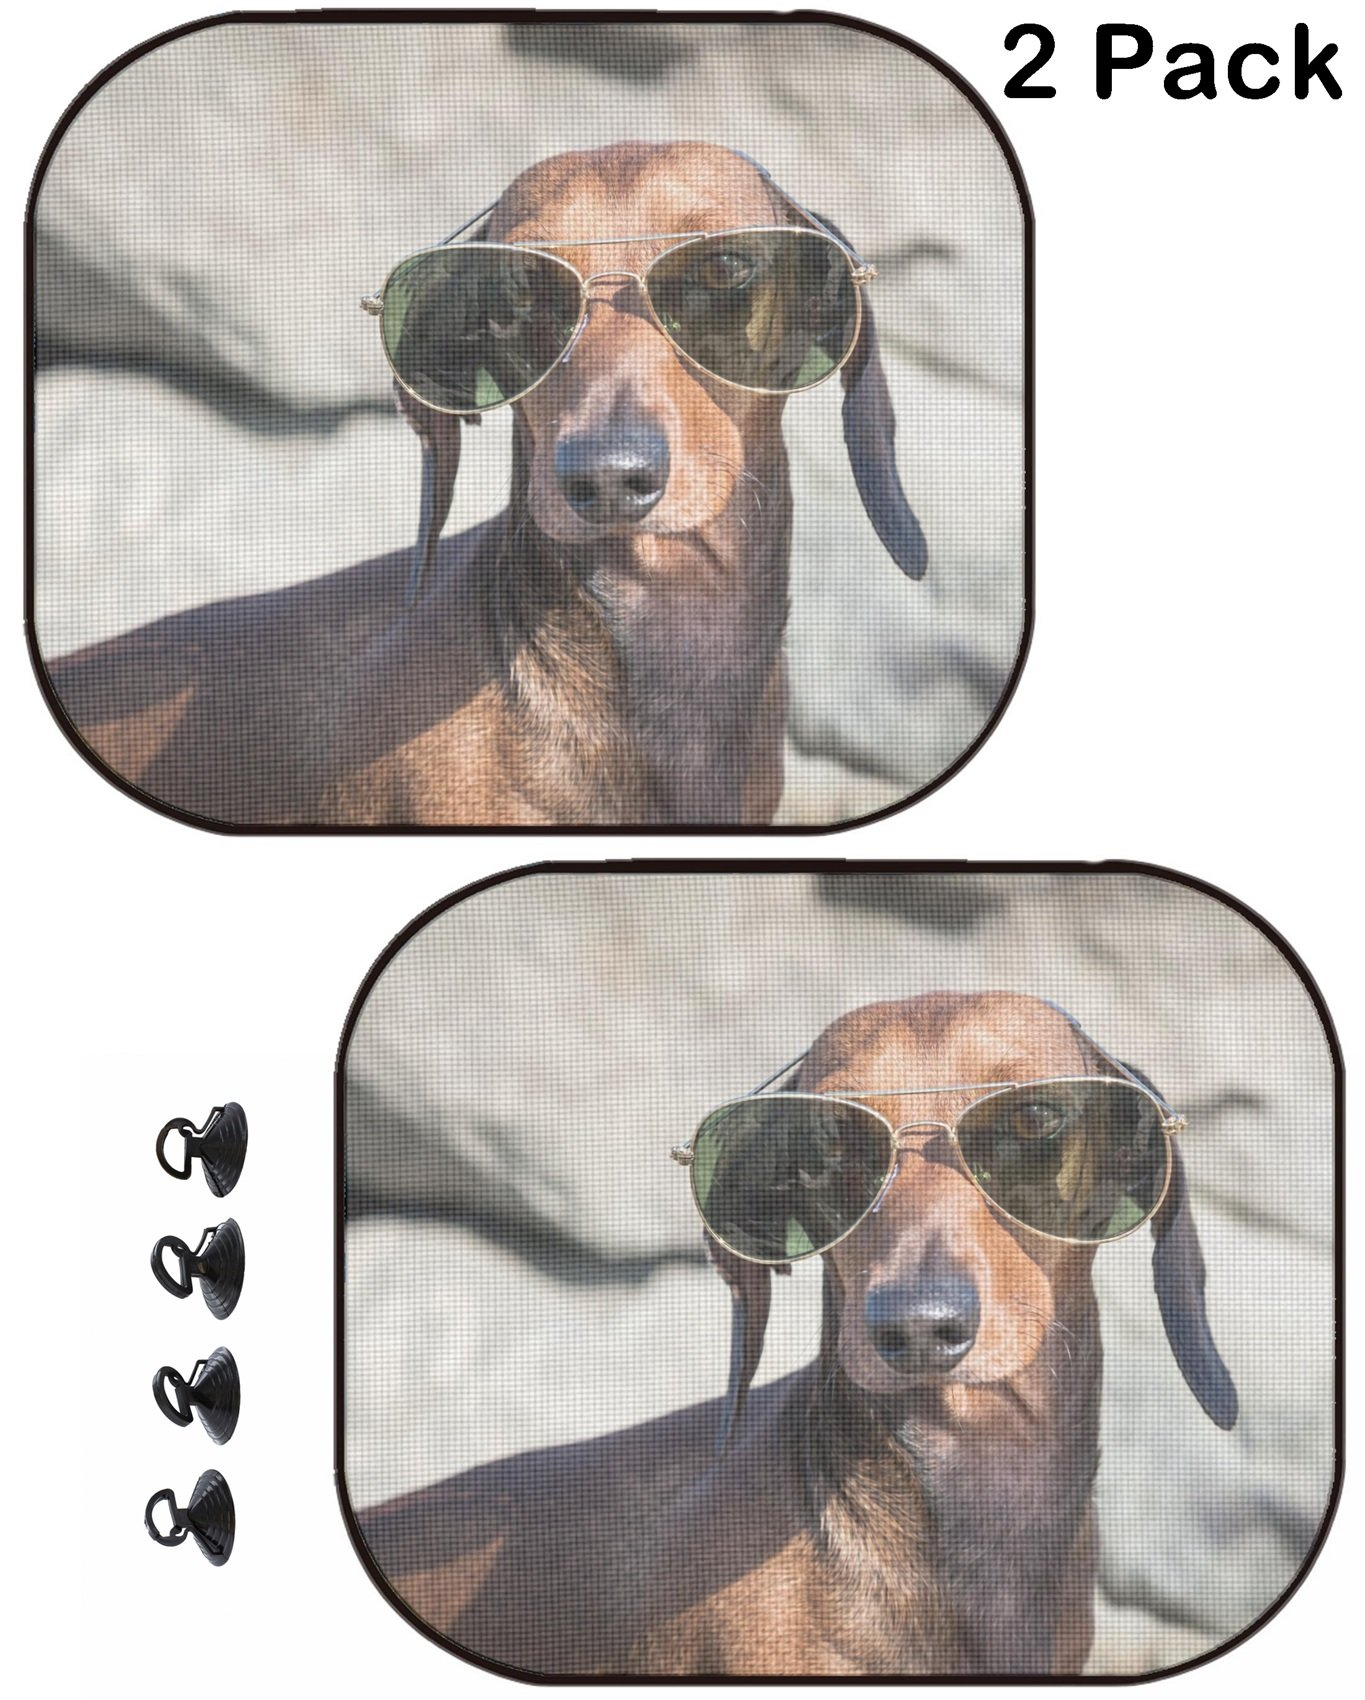 MSD Car Sun Shade Protector Side Window Block Damaging UV Rays Sunlight Heat for All Vehicles 2 Pack Image ID 35379153 Dachshund Dog with Sunglasses at sea Put in a Bag